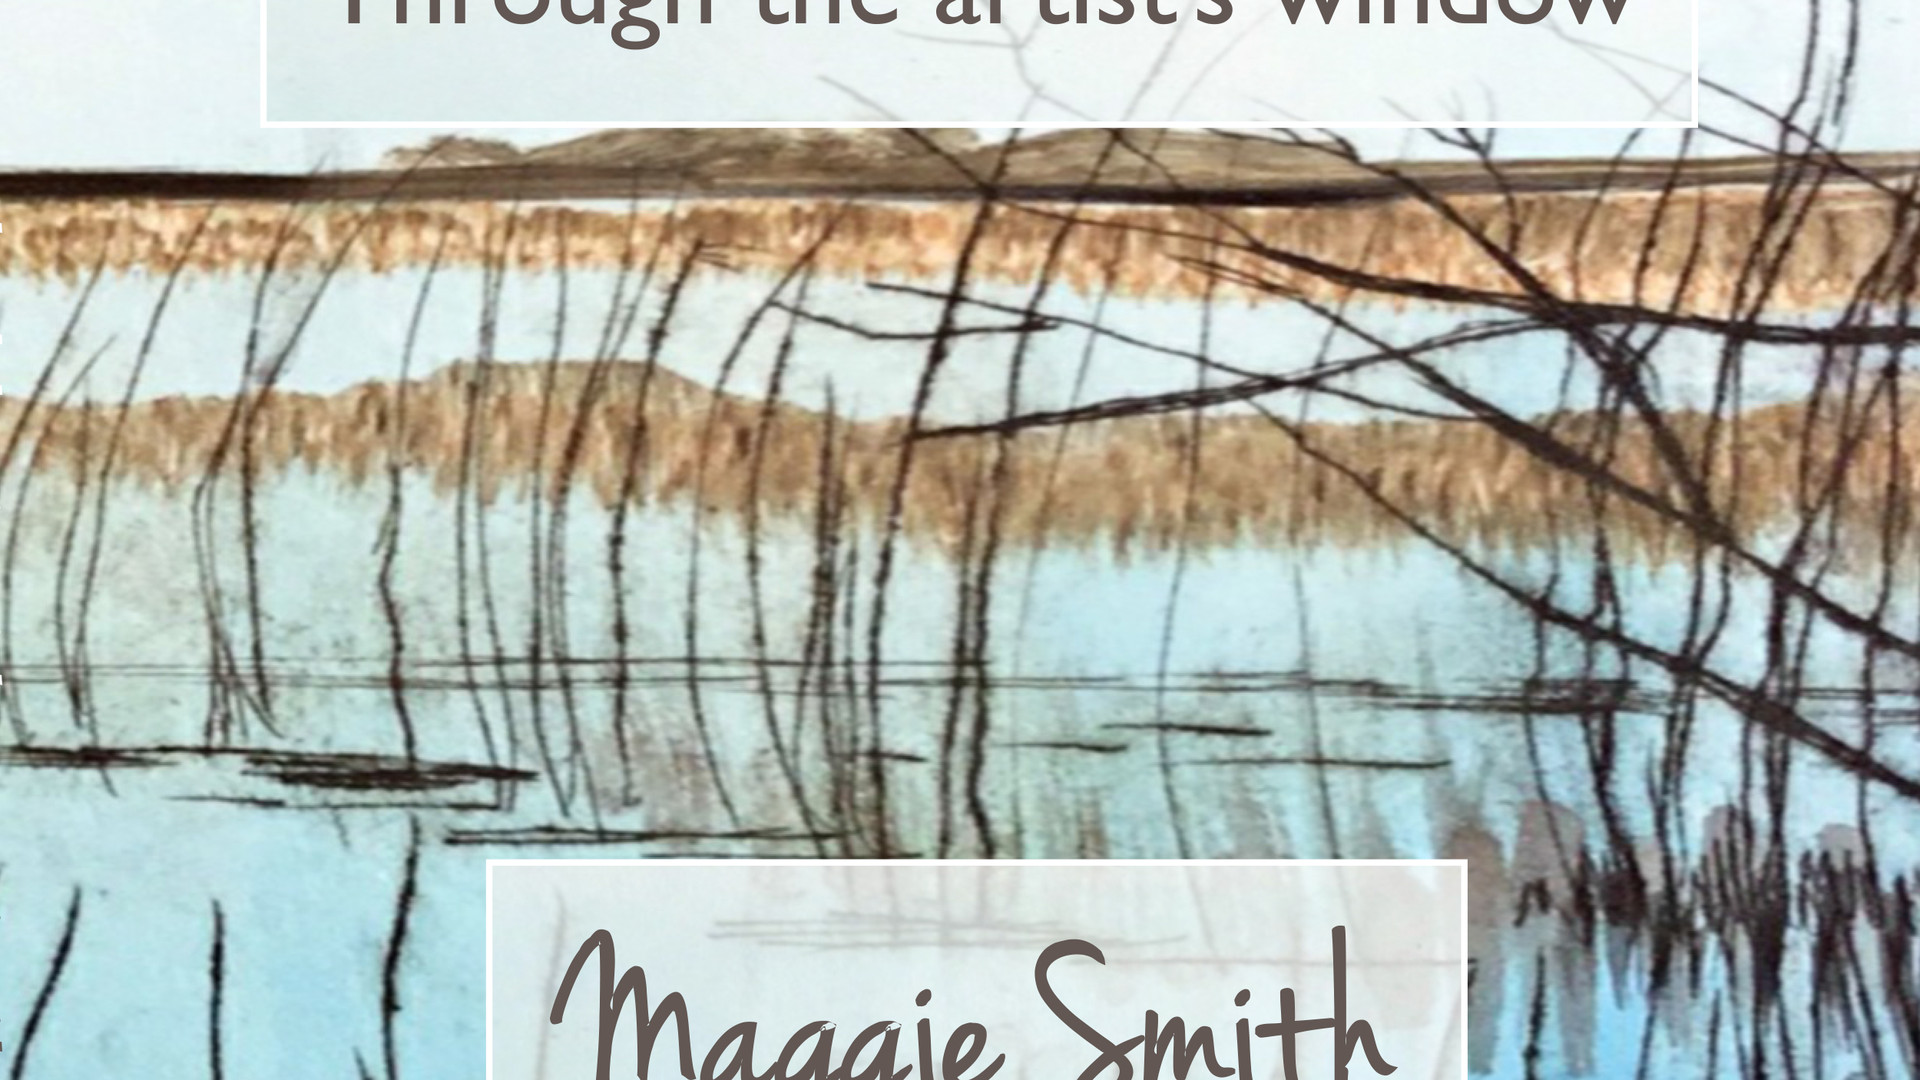 Maggie Smith - Through the artists window